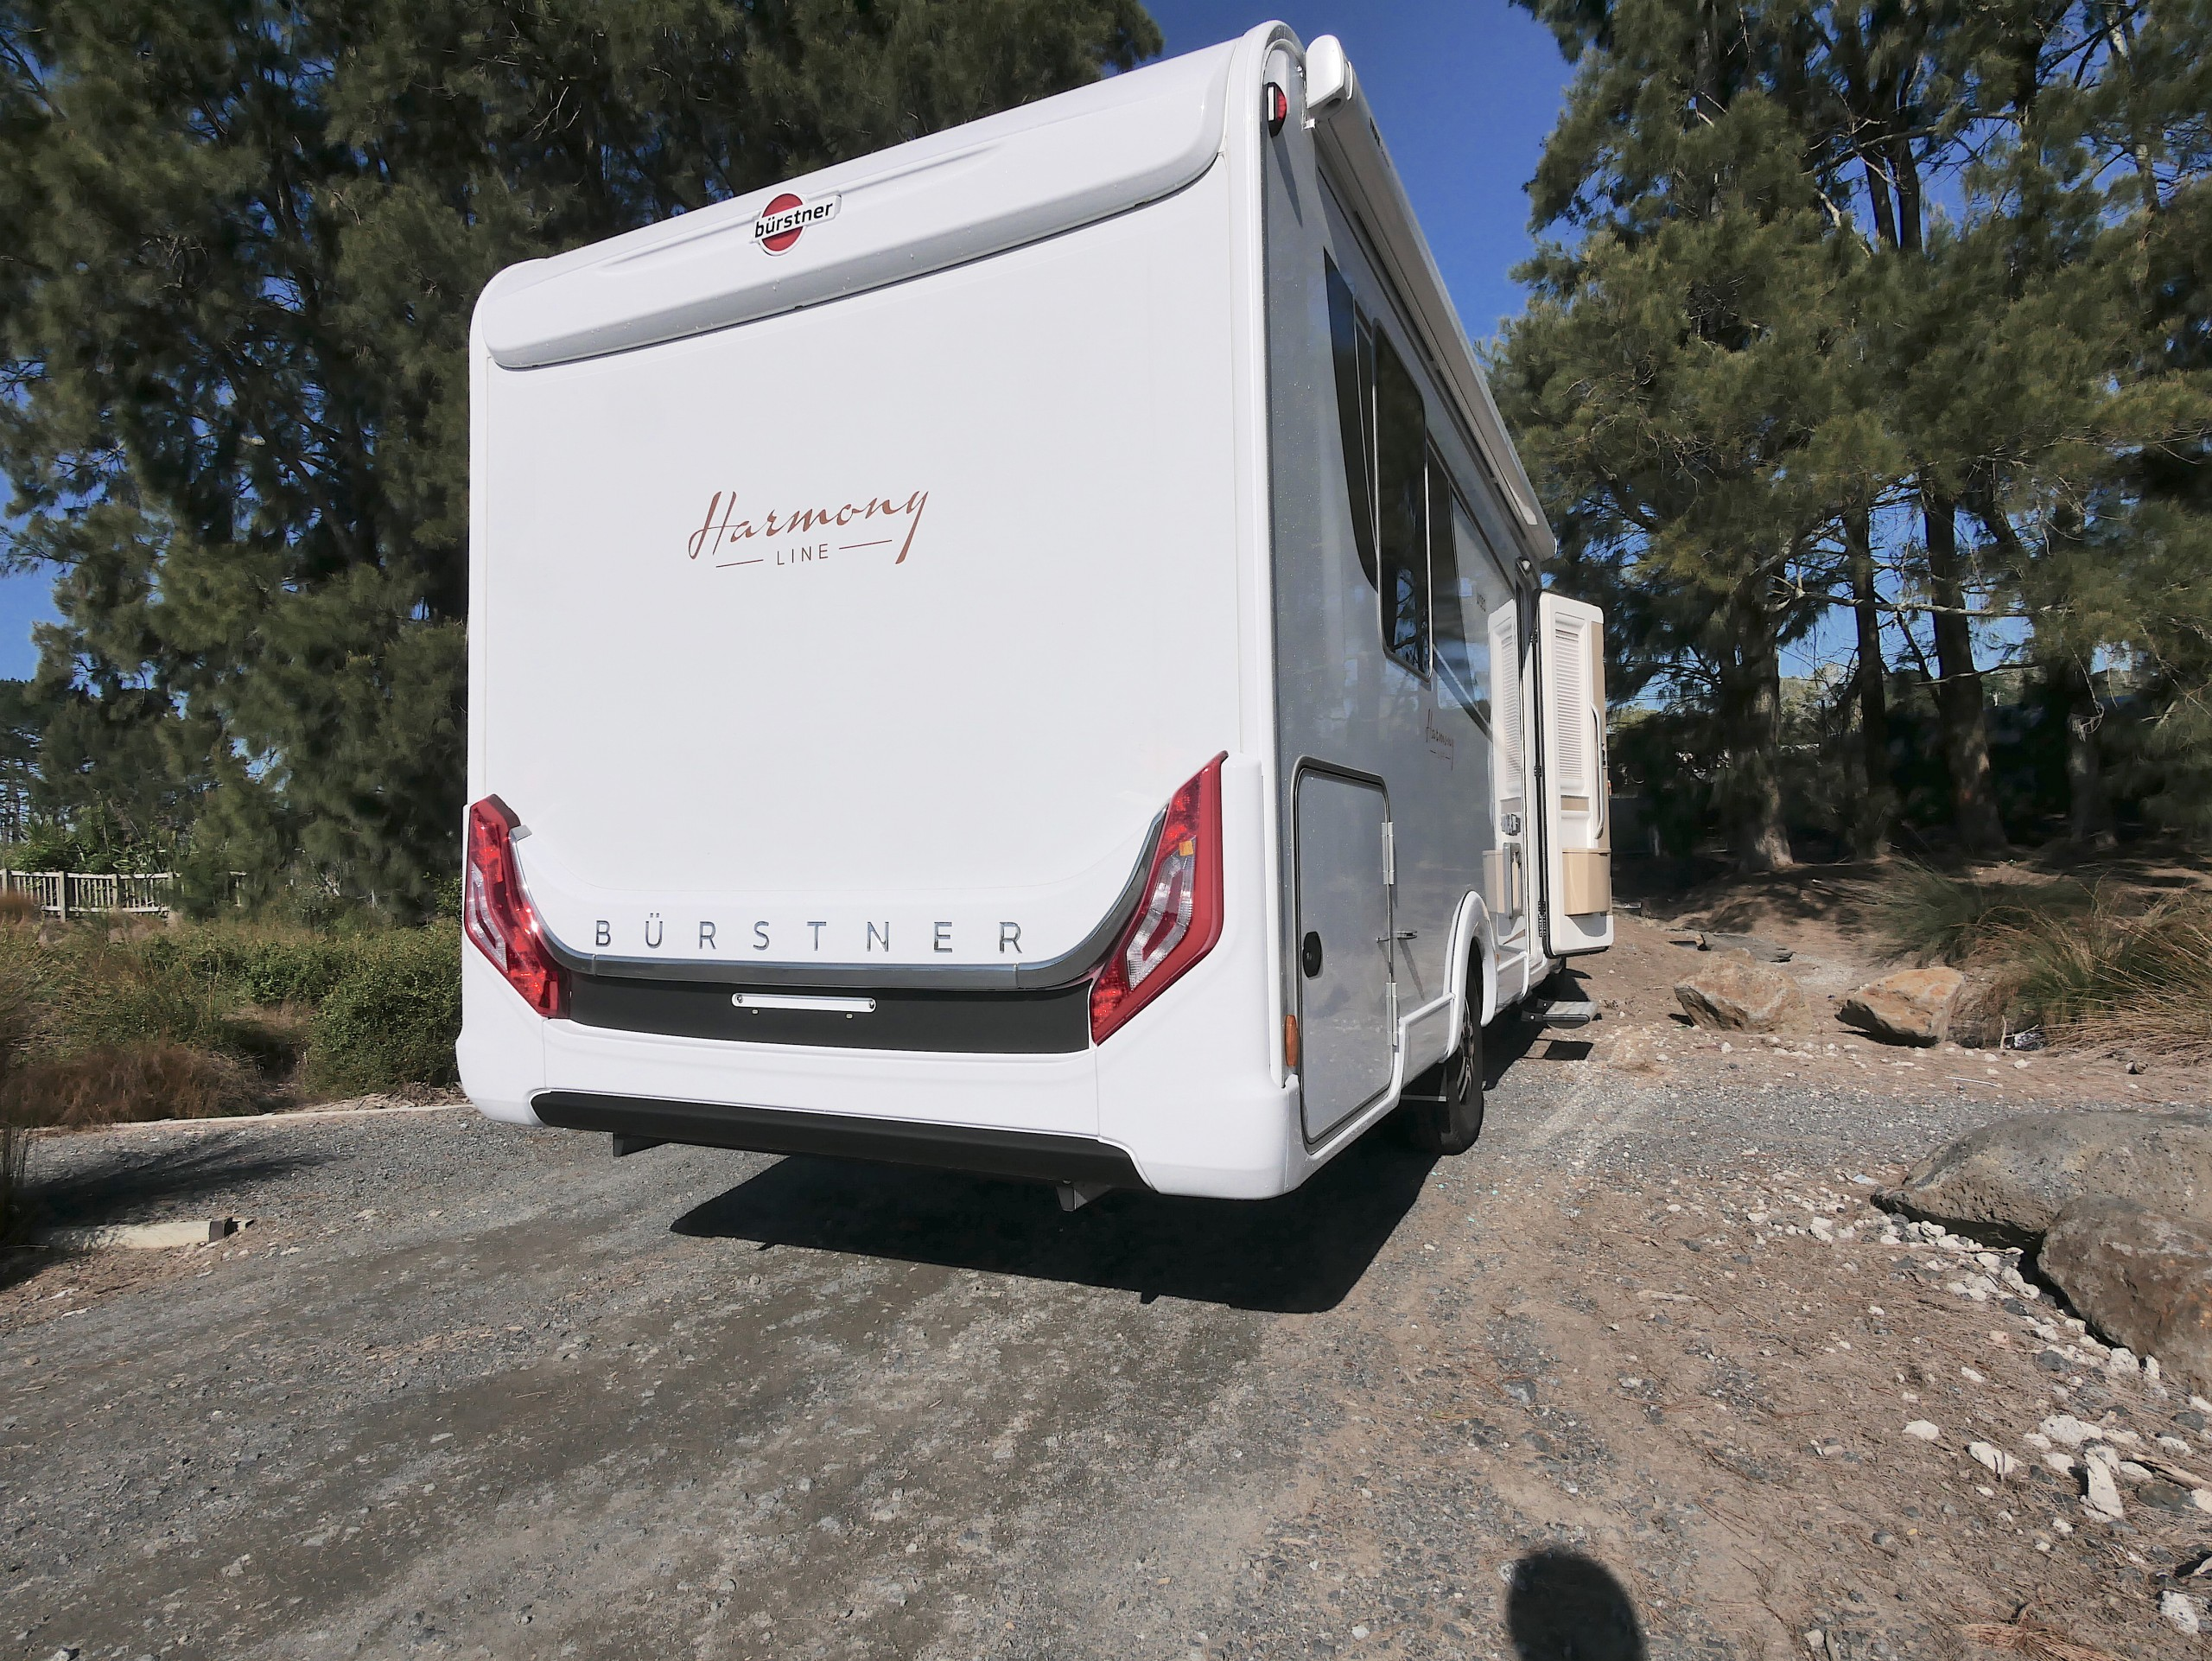 Exterior graphics offer style on the exterior, a near full-length awning is great, habitation door is on the right driver side, electric entry step